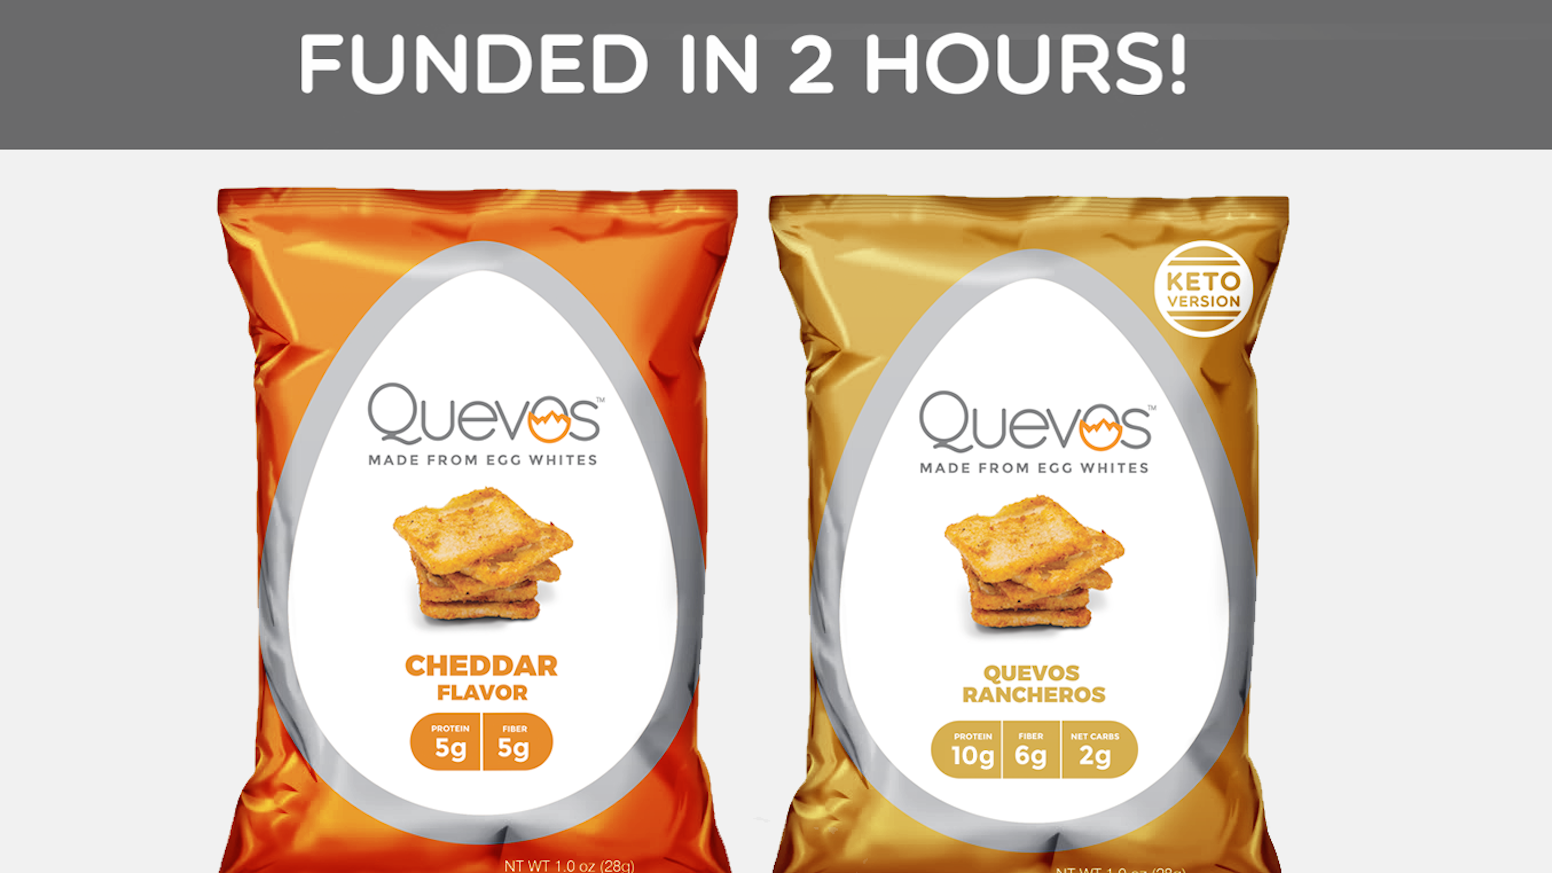 Quevos are high protein, low carb chips made from egg whites. Finally, a delicious snack you can feel great about eating!